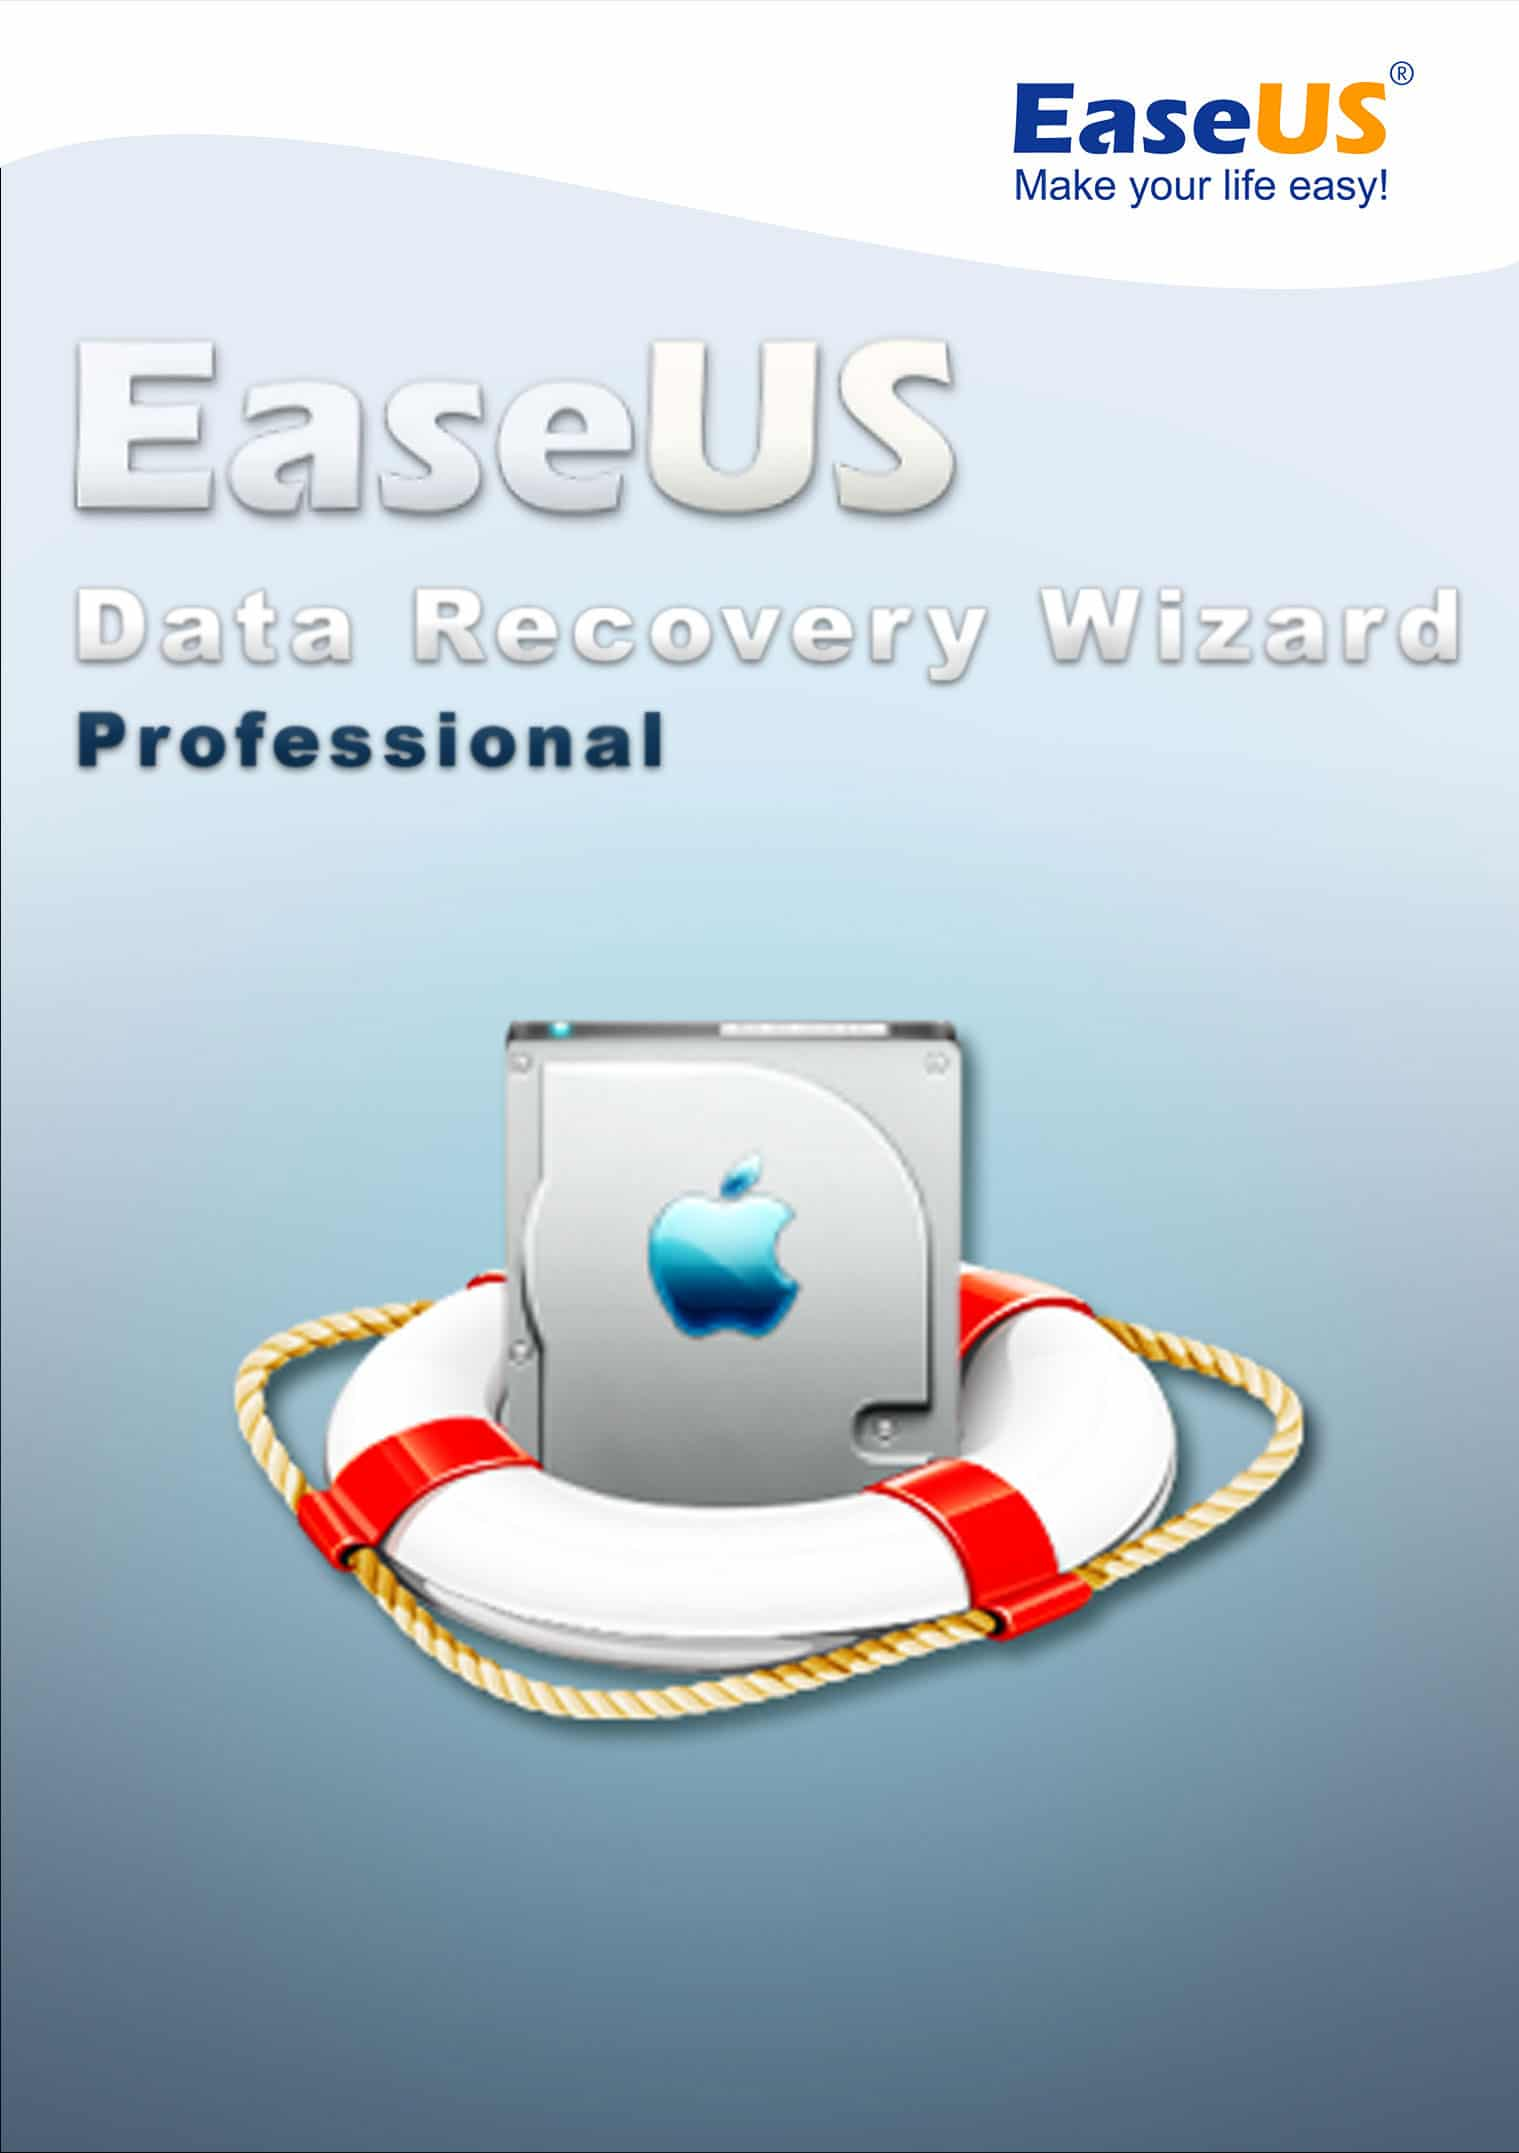 EaseUS Data Recovery Wizard Mac - Packshot